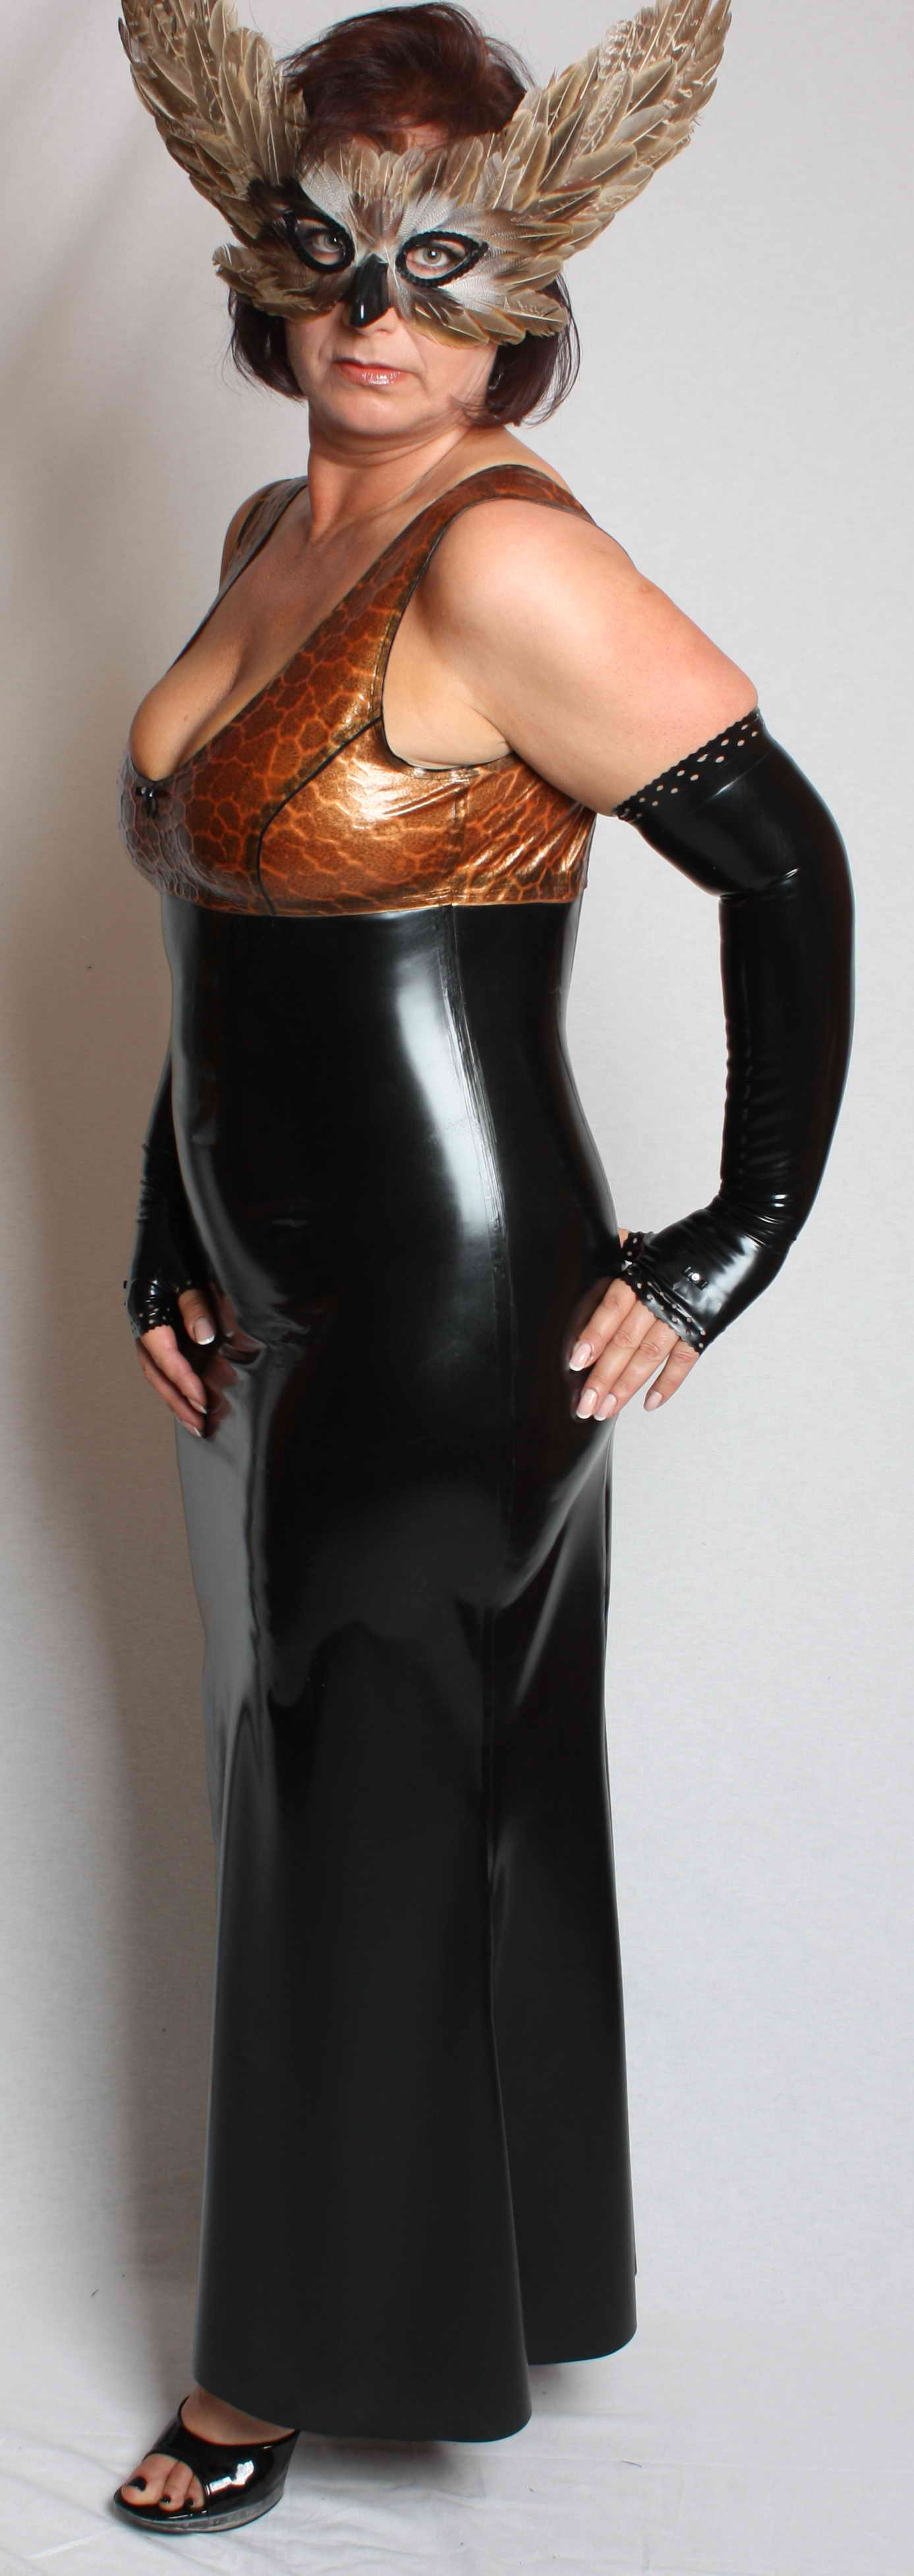 Mixed Pictures Latex Line